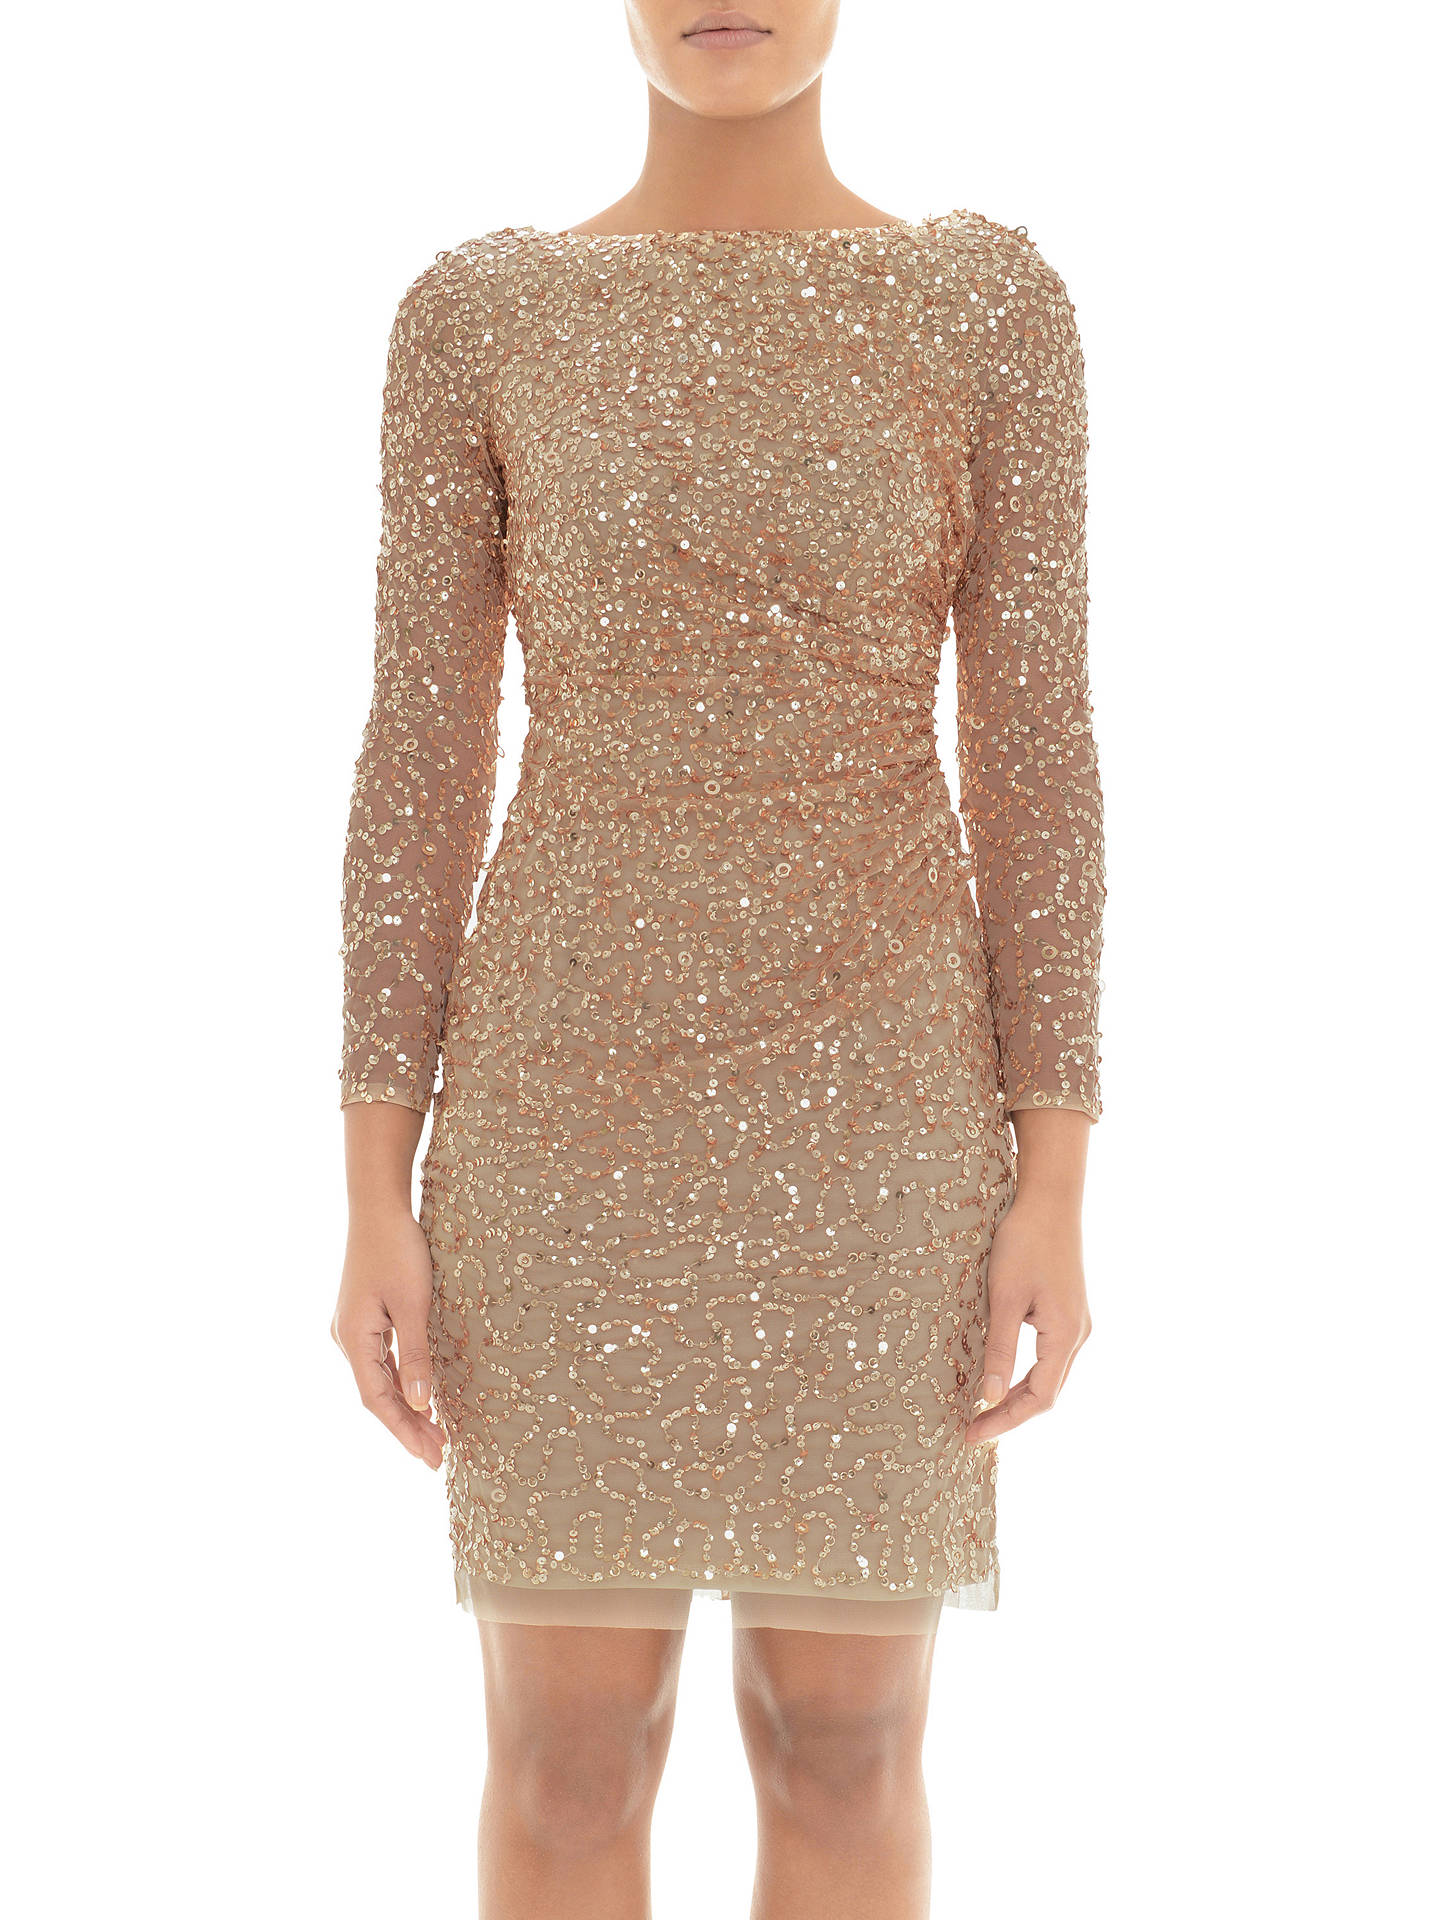 084e35e218a6a Buy Adrianna Papell Sequin Cowl Back Dress